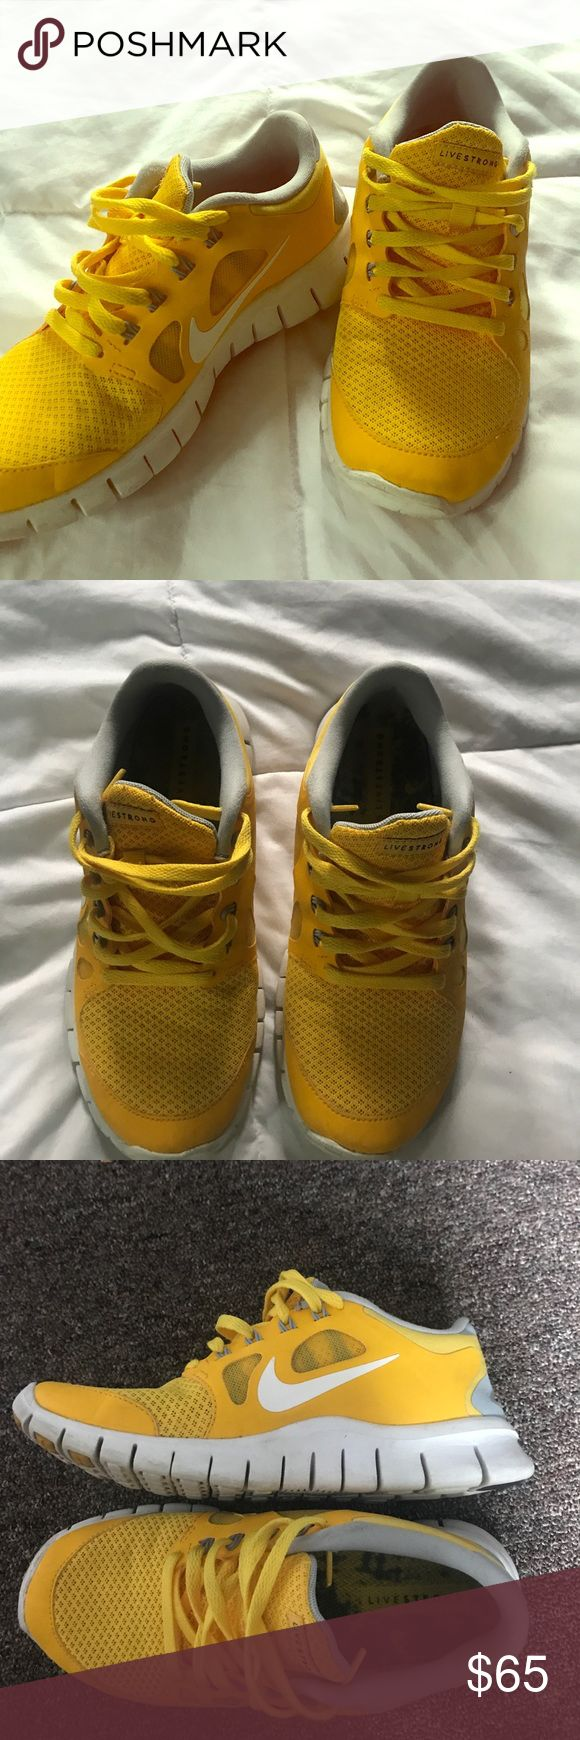 NIKE Livestrong Free run 👟 Great condition, comfortable running shoes! Nike Shoes Sneakers